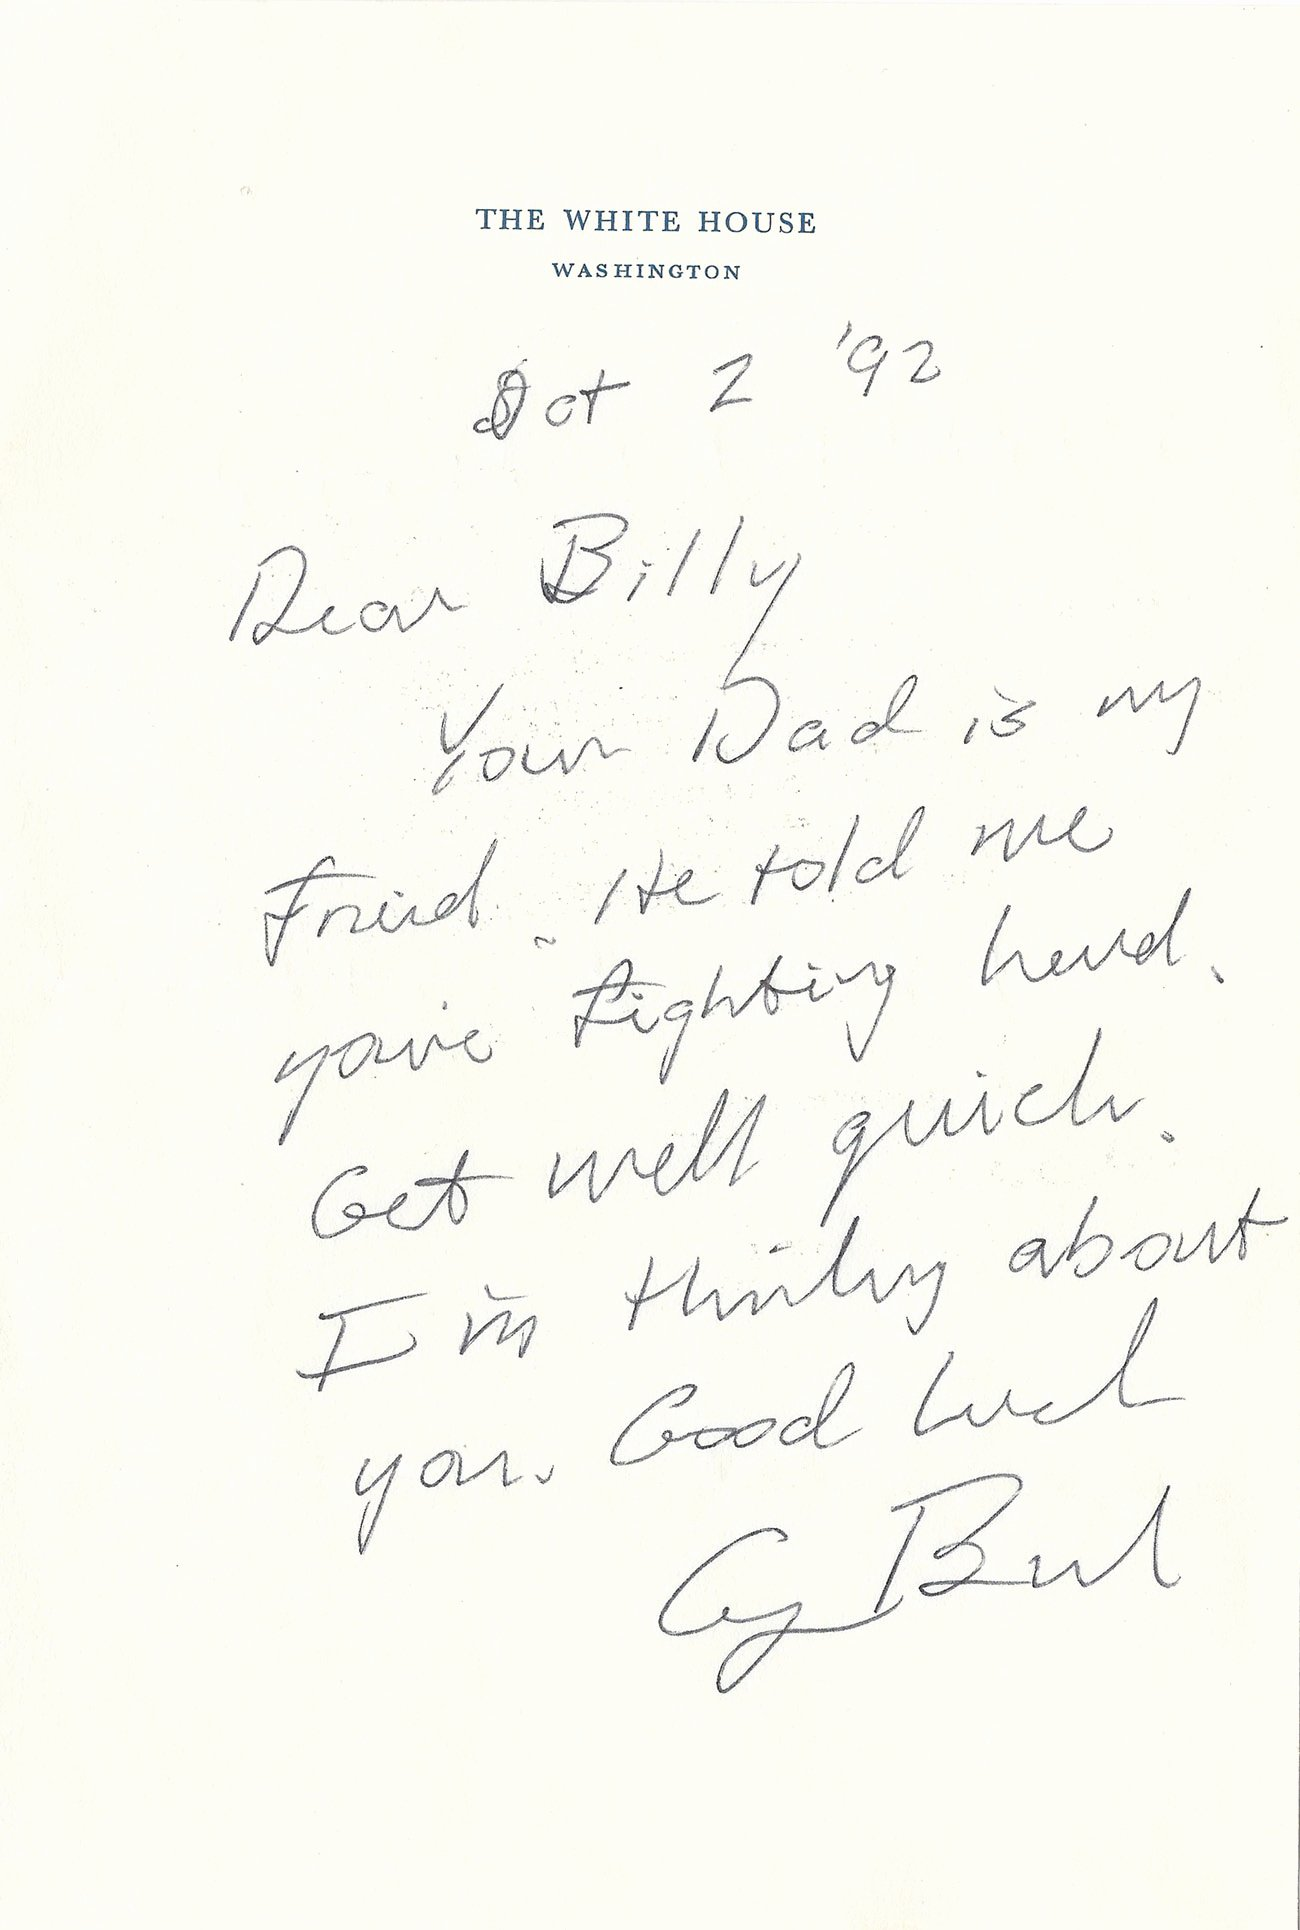 Encouragement Letter to A Friend Awesome George Bush Autograph Letter Signed to A Young Child